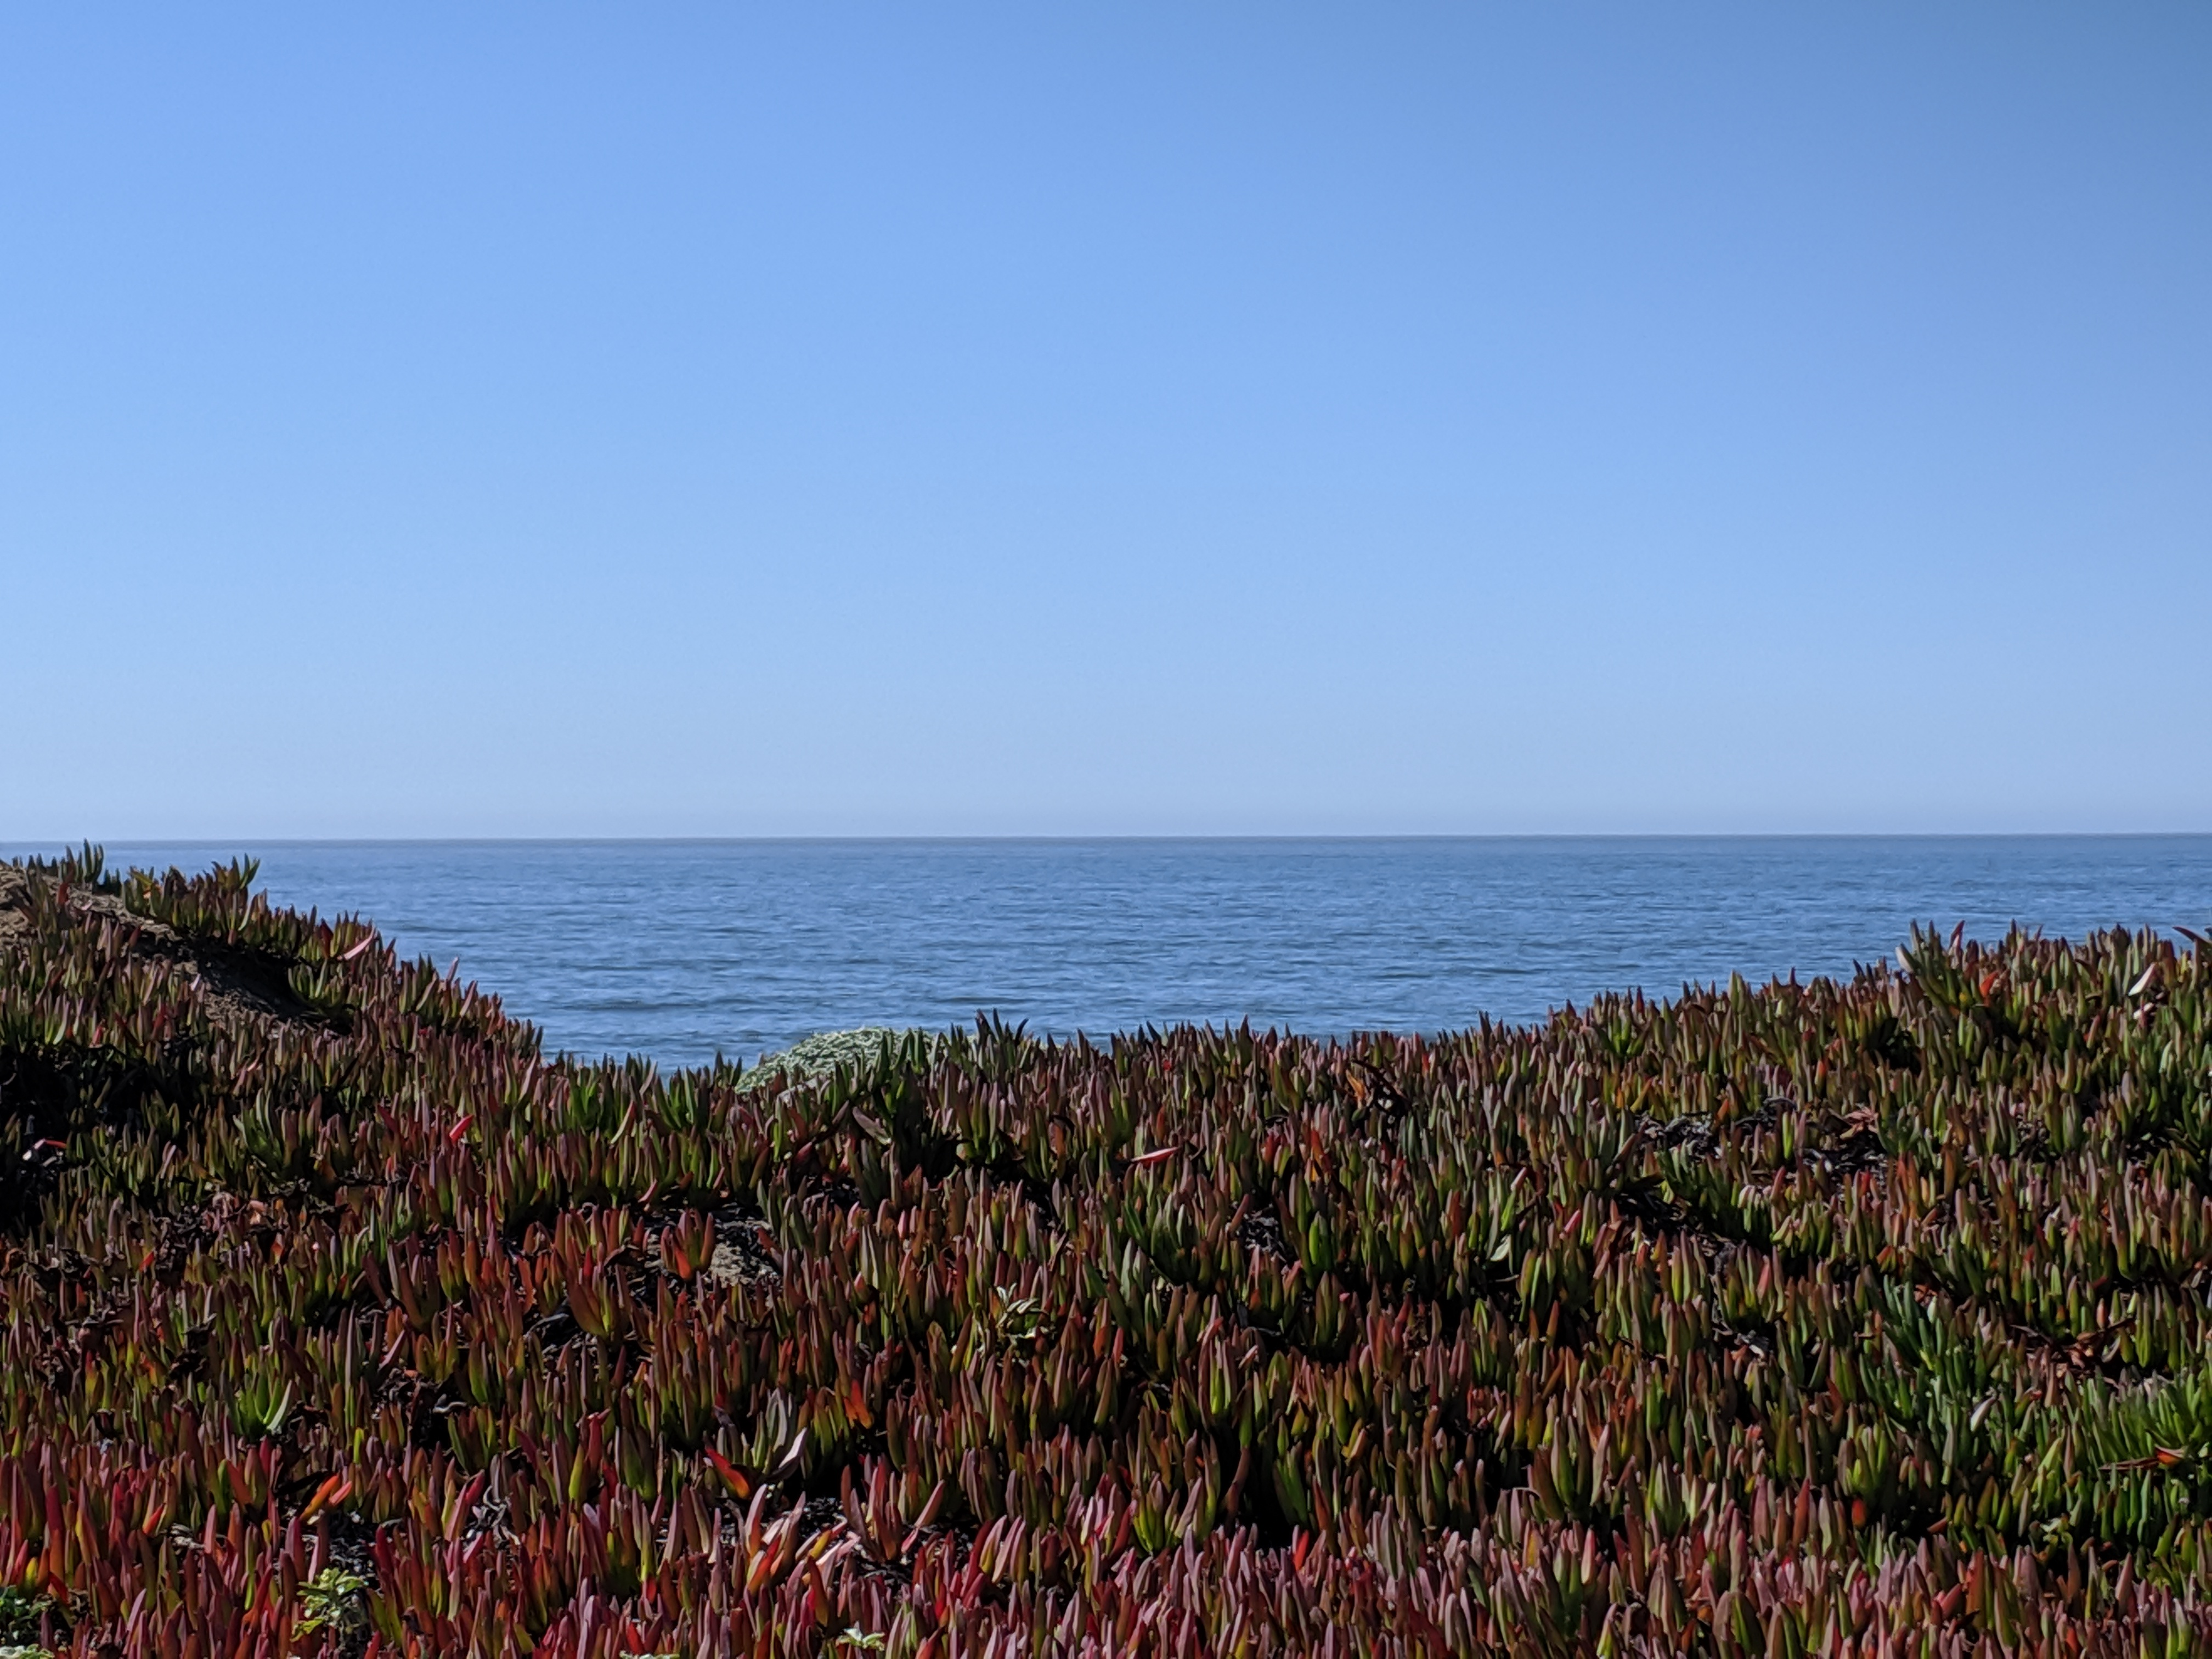 Ice plants, ocean, and sky.